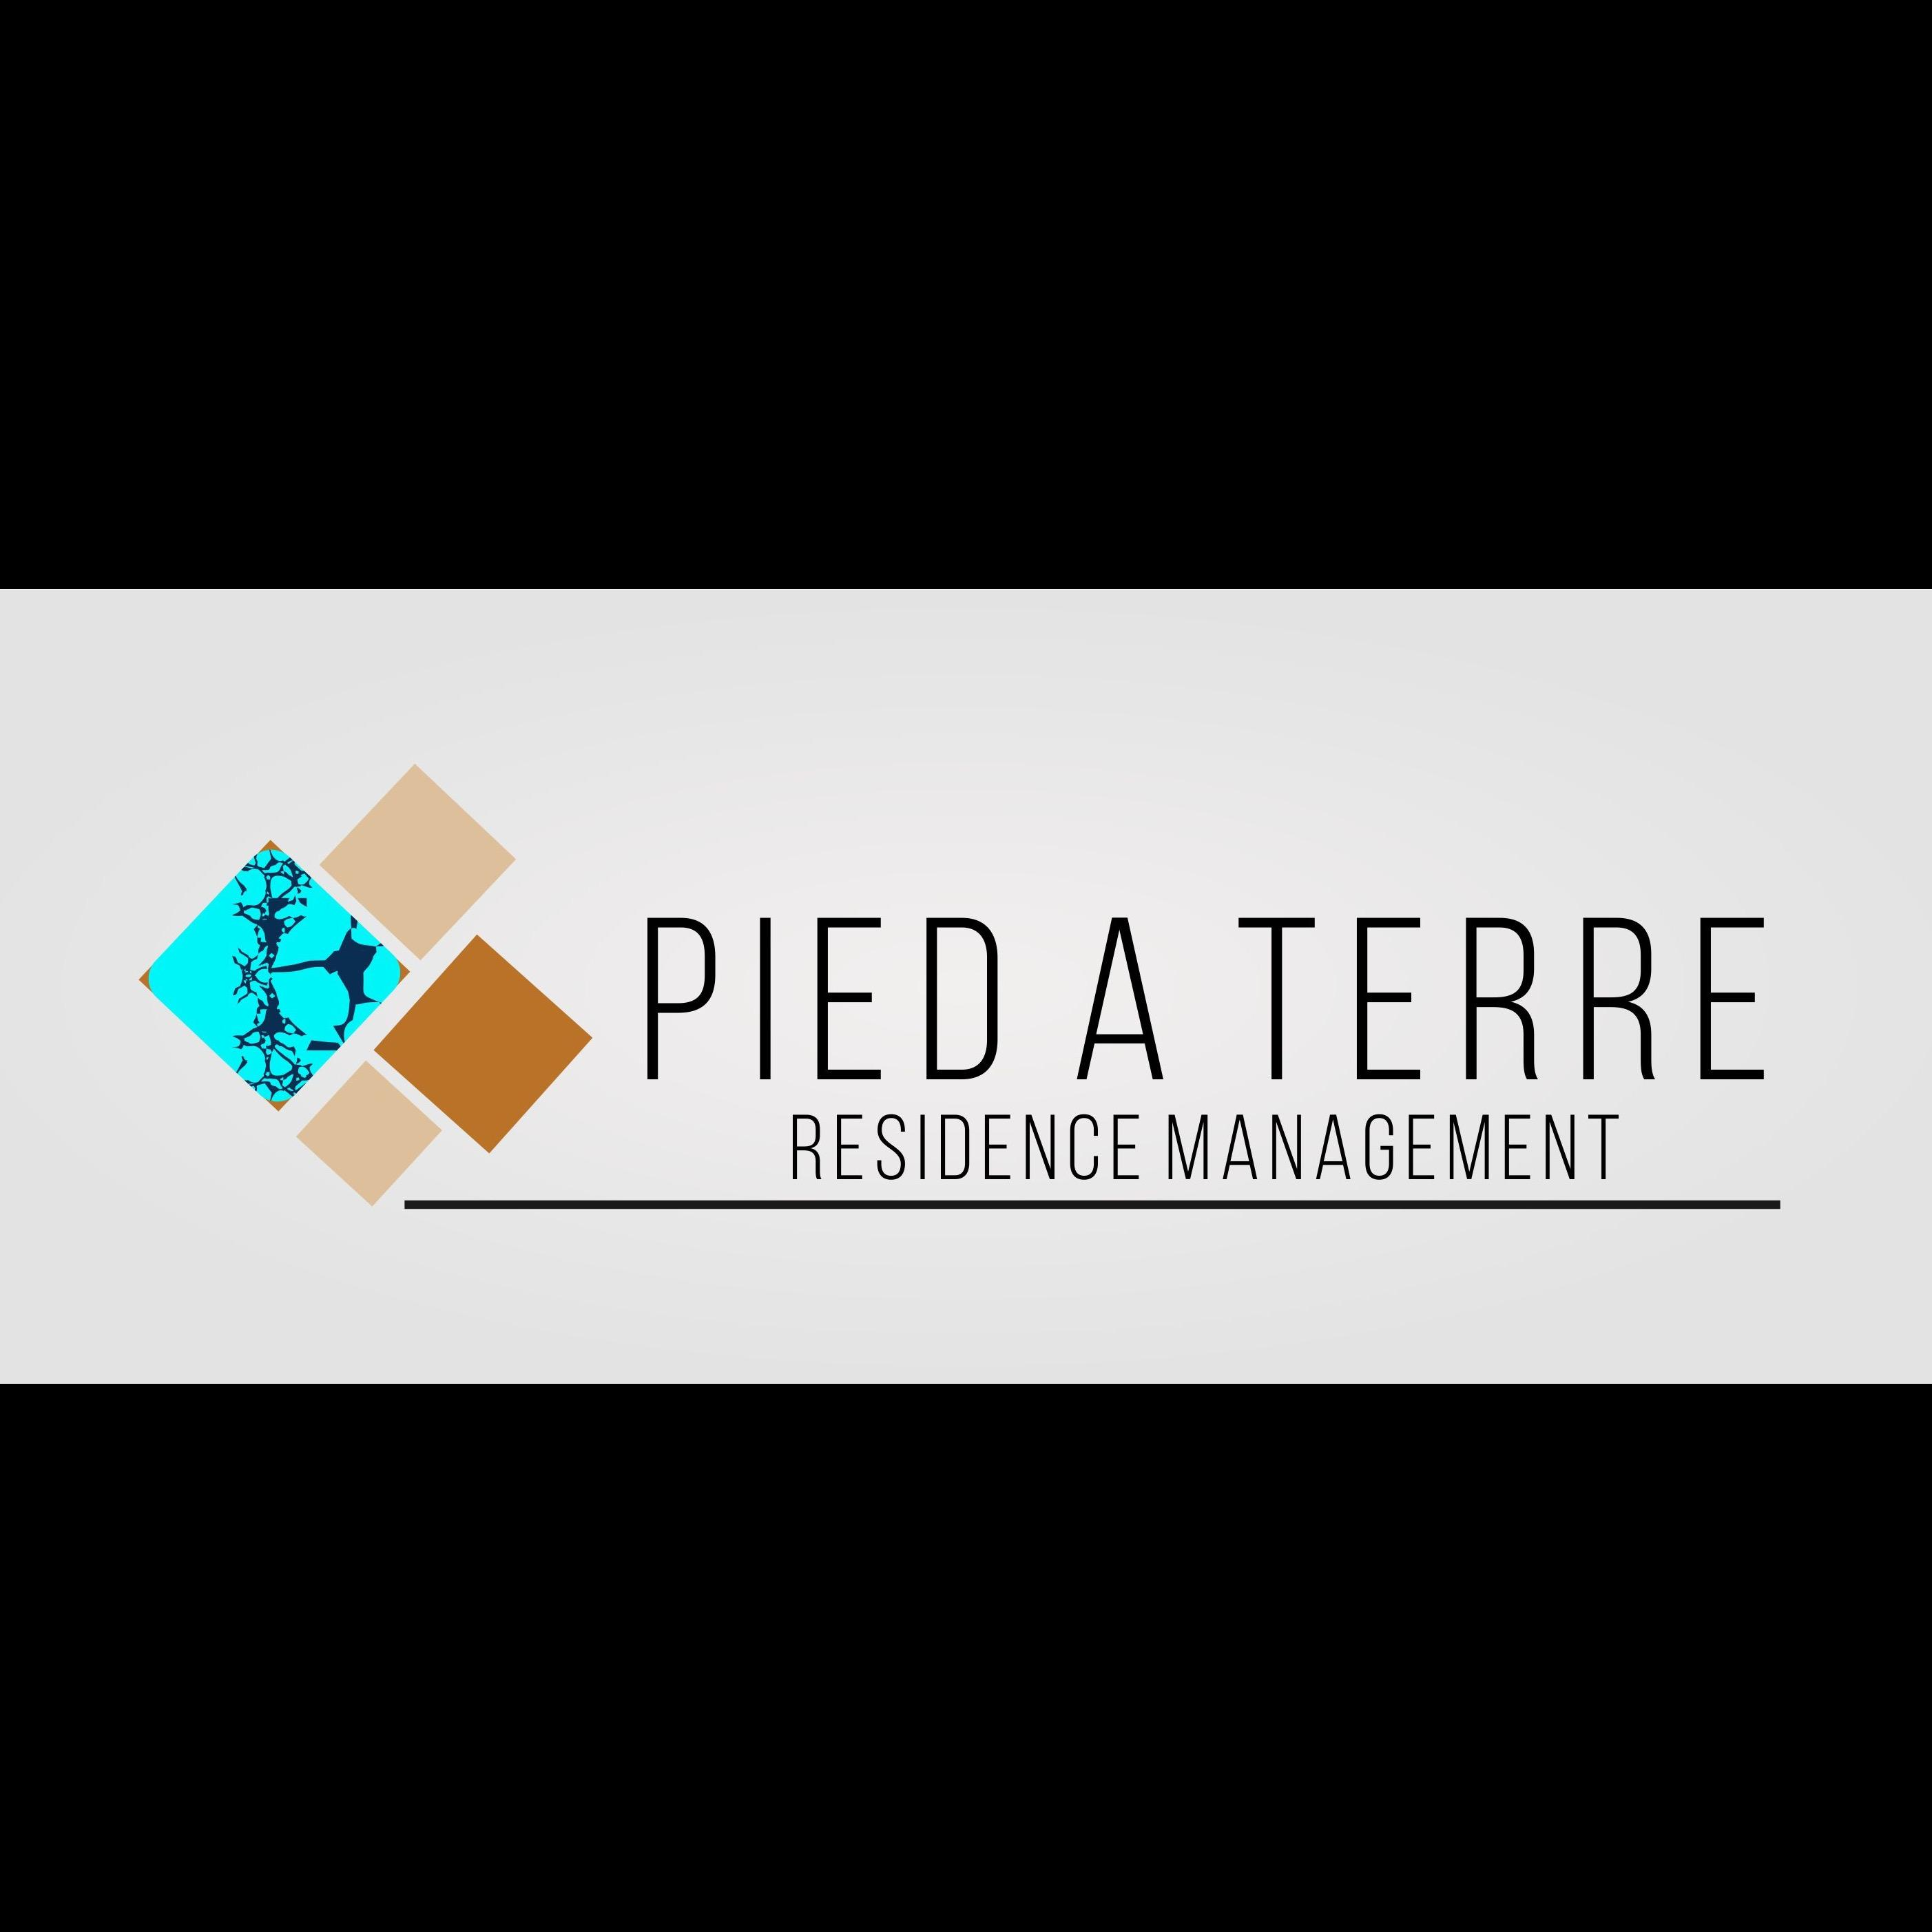 PIED A TERRE RESIDENCE MANAGEMENT